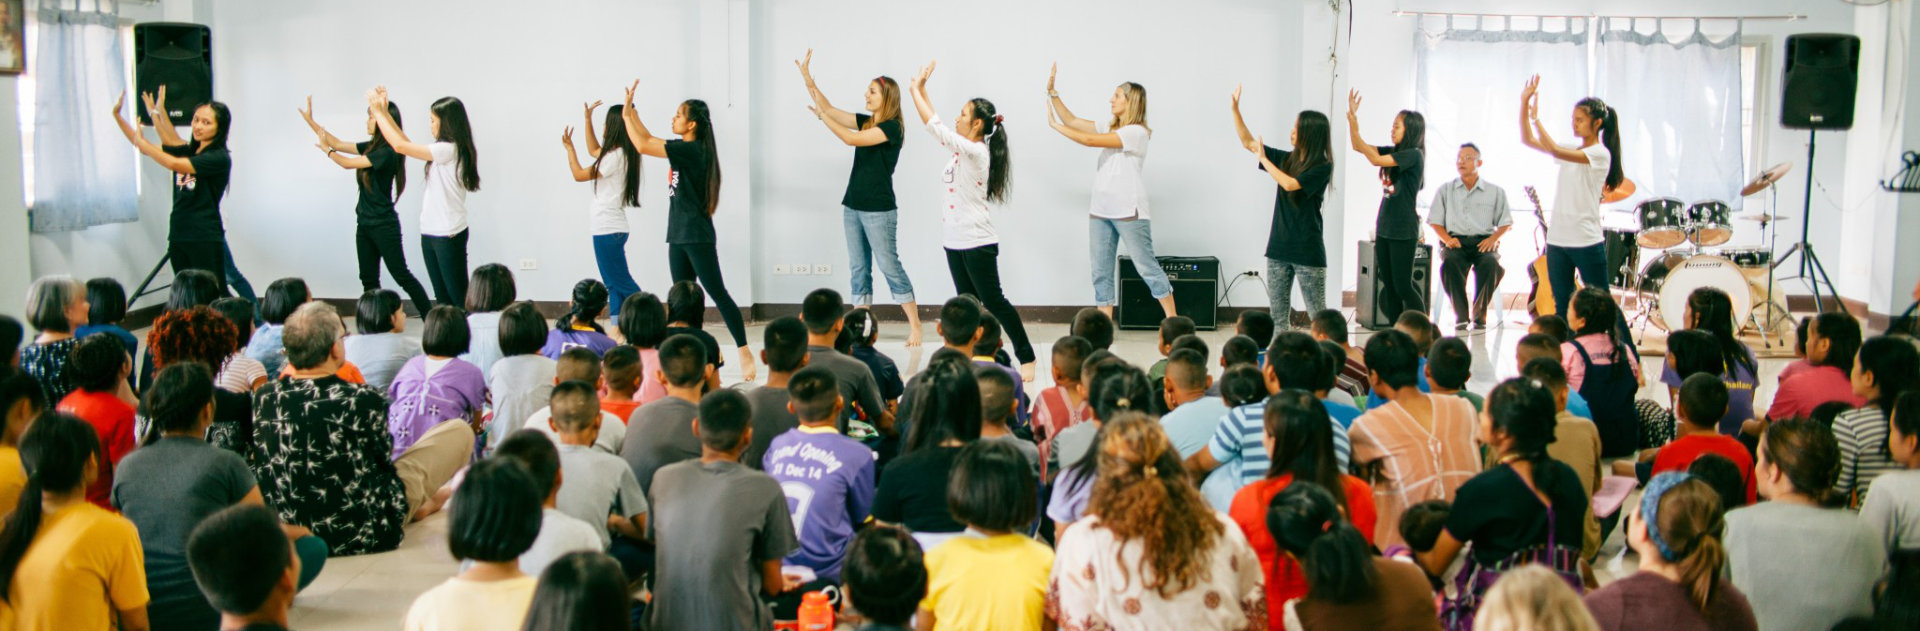 People dancing infront of a crowd